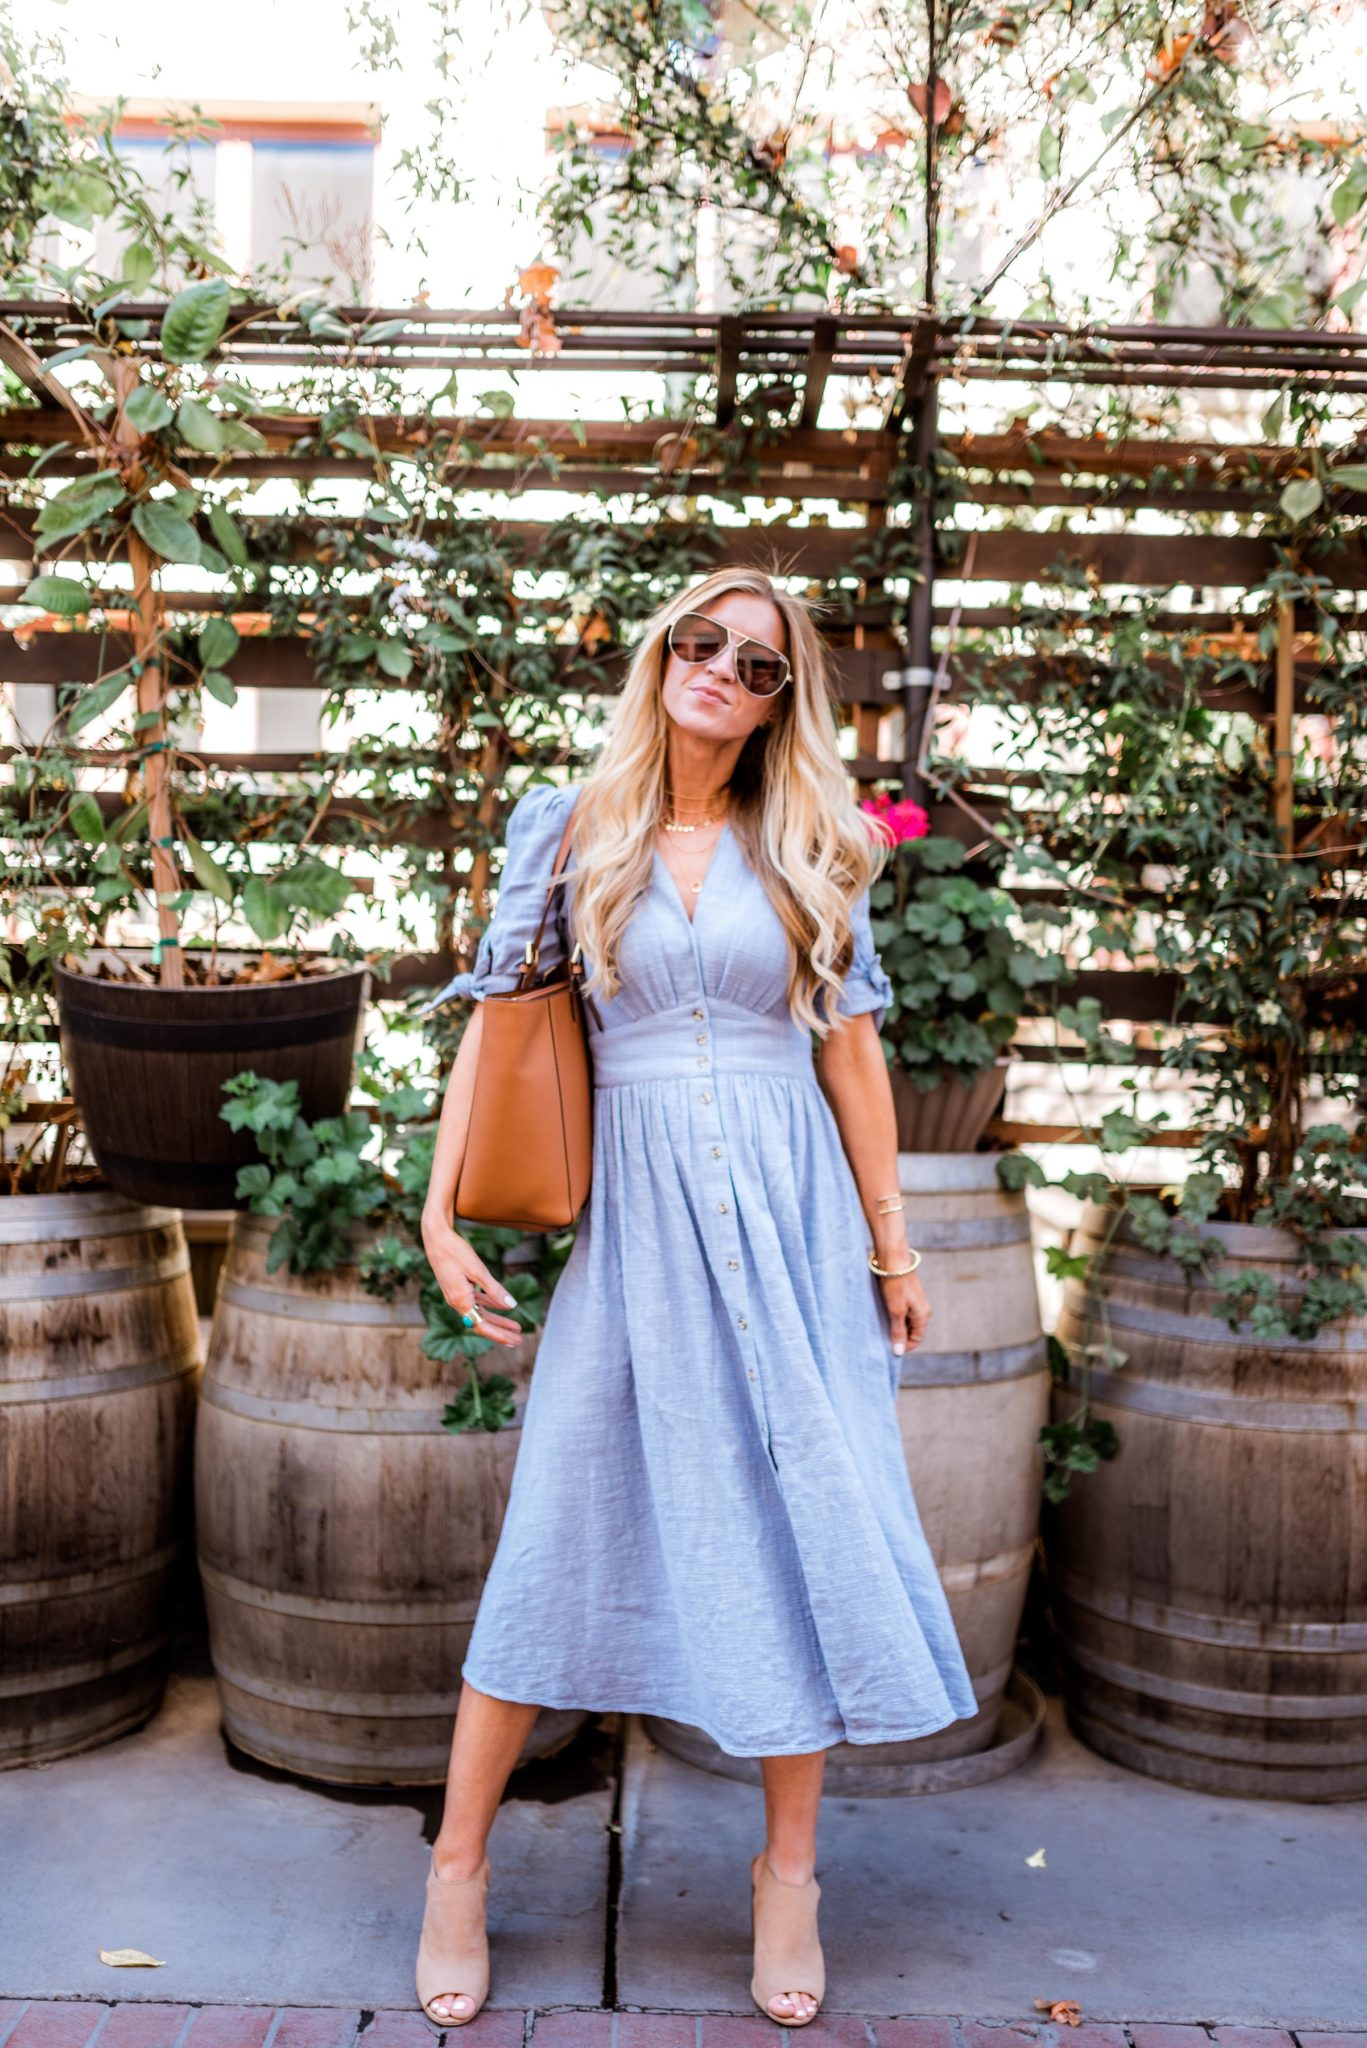 Spring Fashion Dresses That Are Affordable And Perfect For